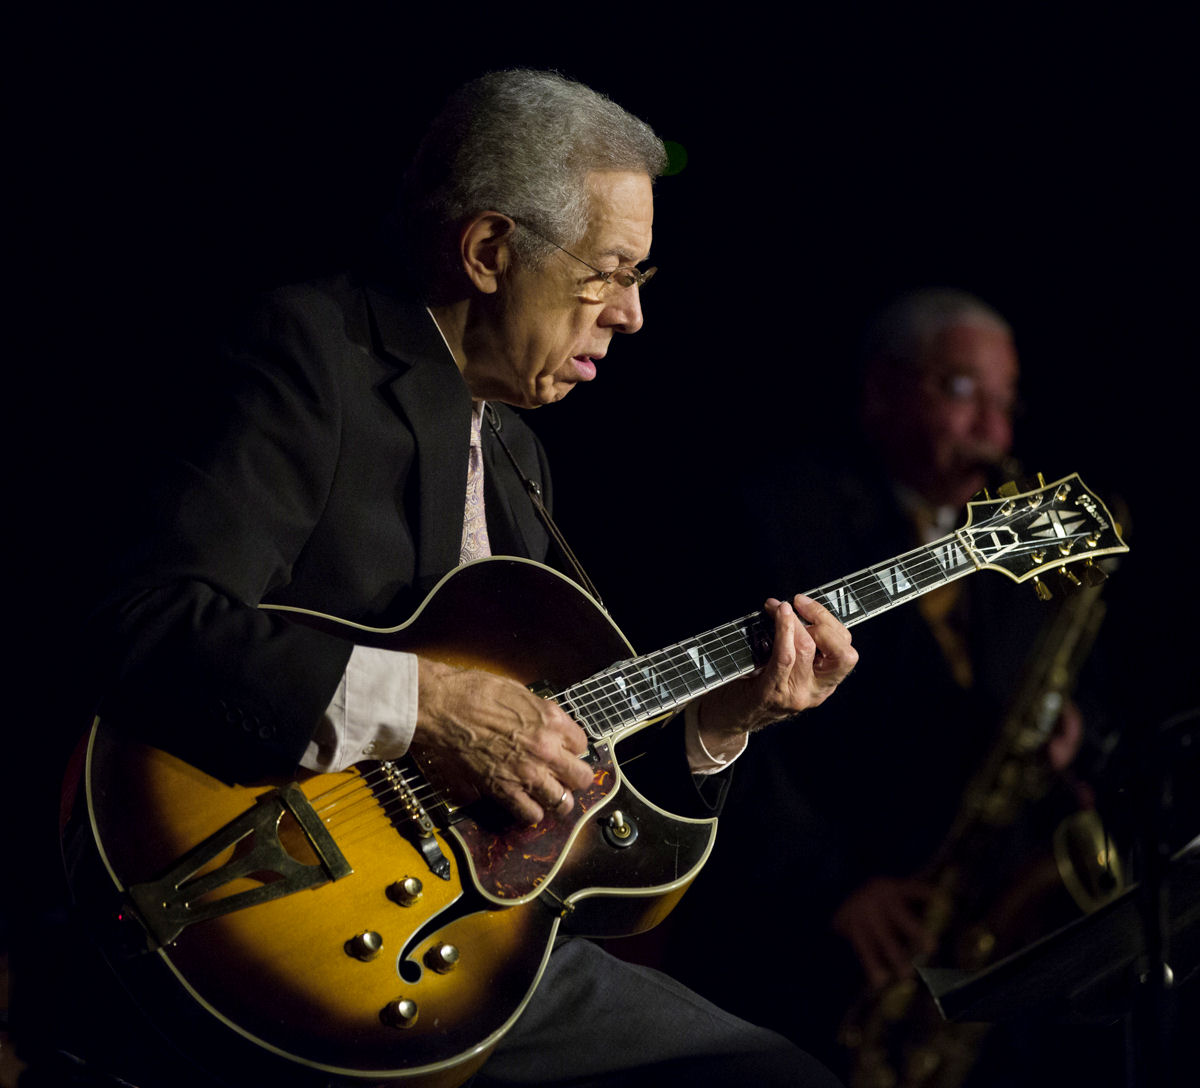 Kenny Burrell And The Jazz Guitar Band Pieces Of Blue And The Blues